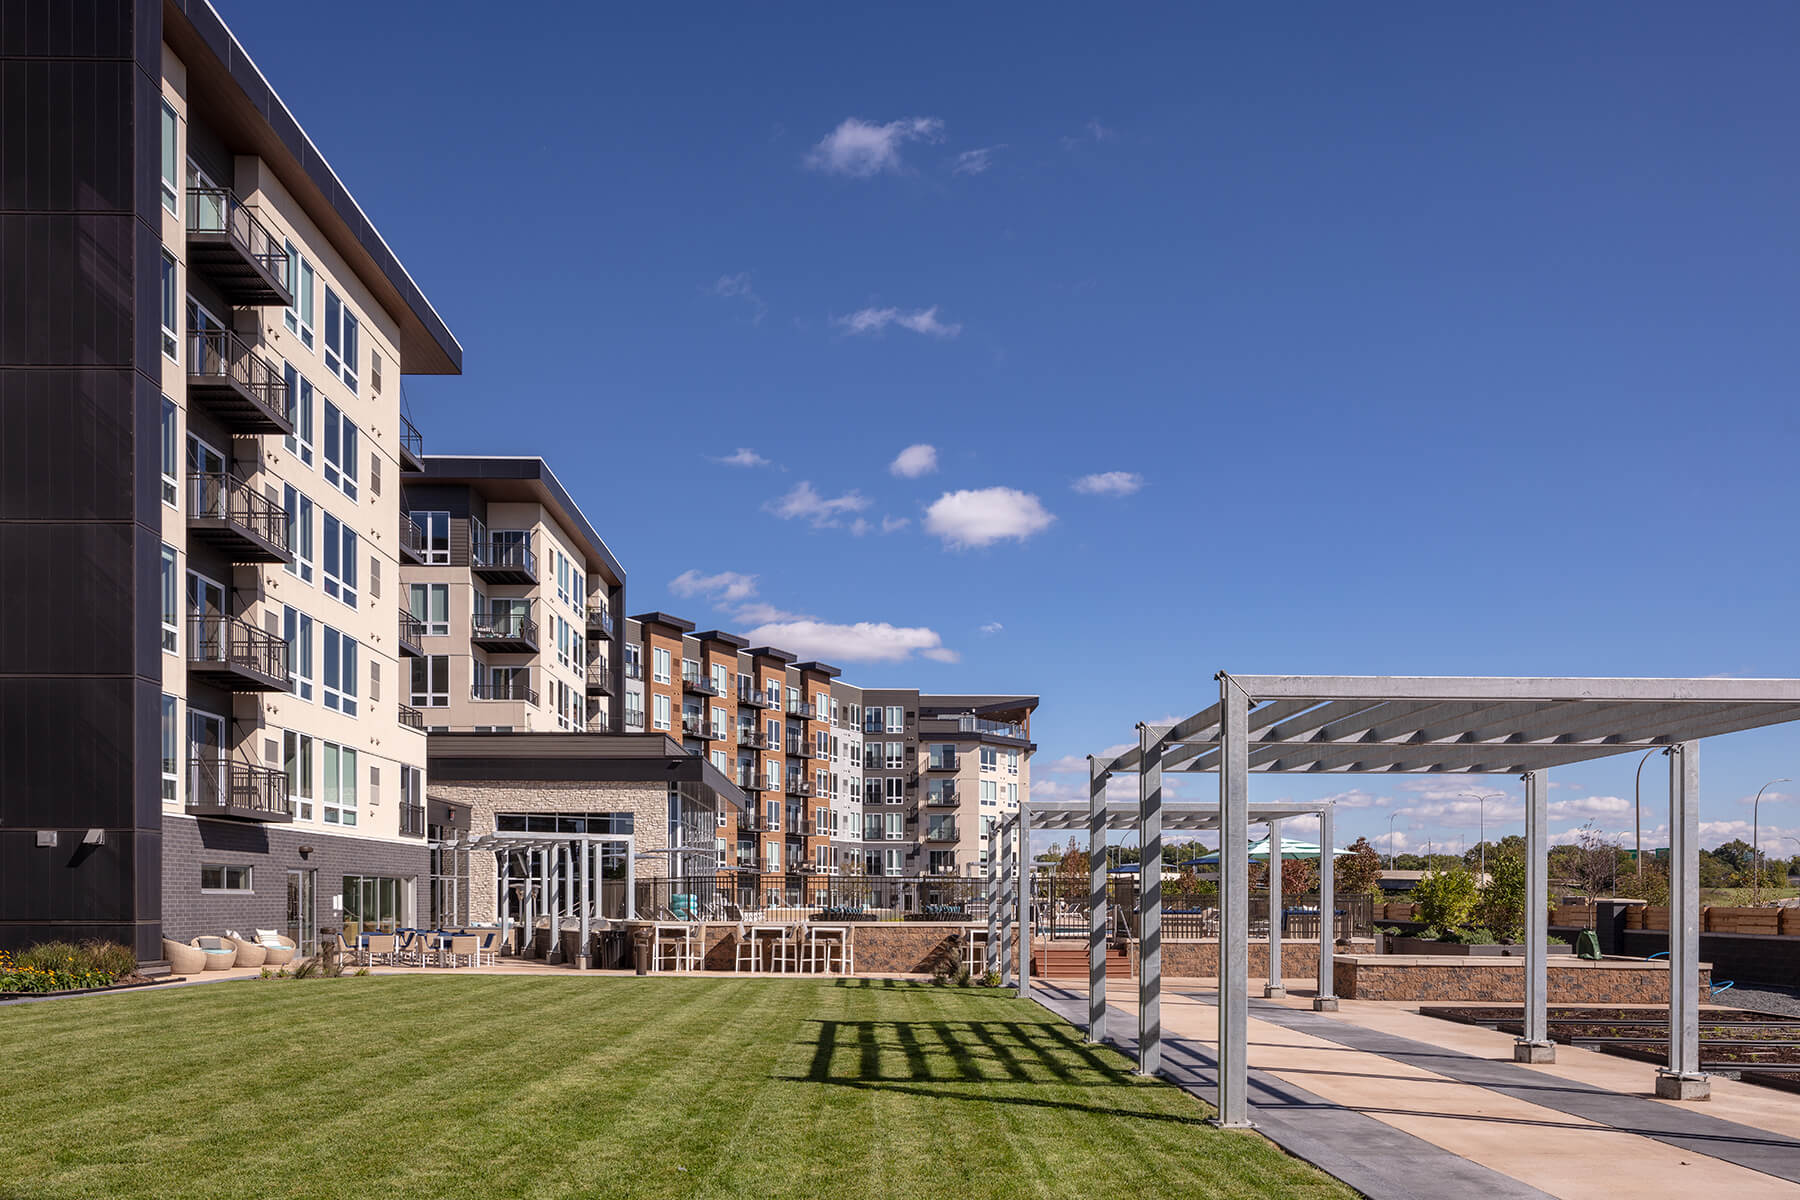 Minneapolis Luxury Apartments for Rent Photo of  SPRAWL: Outdoor lawn area - Lifestyles of the chill & active